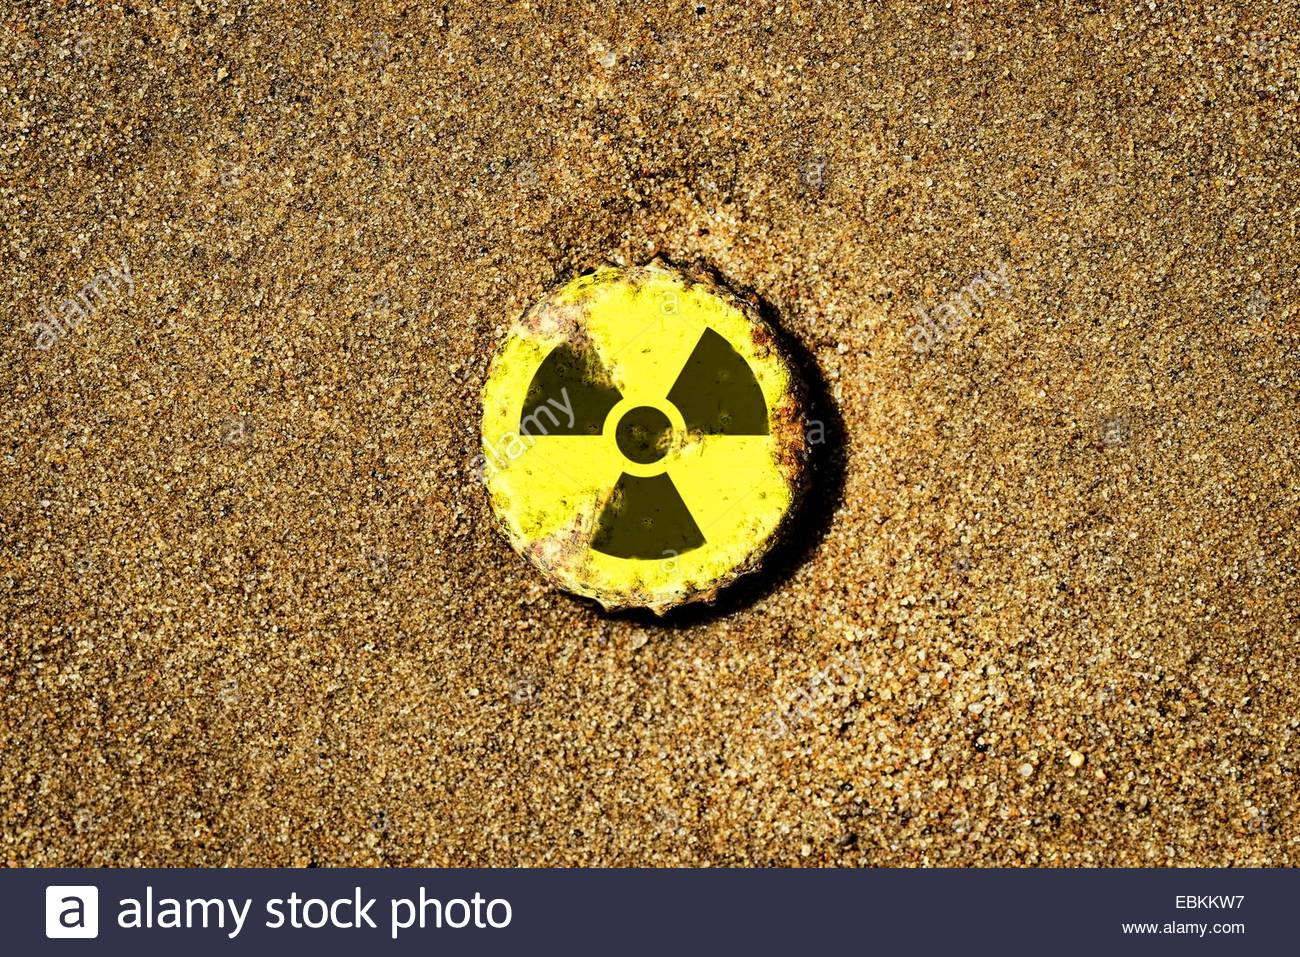 rusty bottle cap with the radioactivity symbol lying in the sand - Stock Image